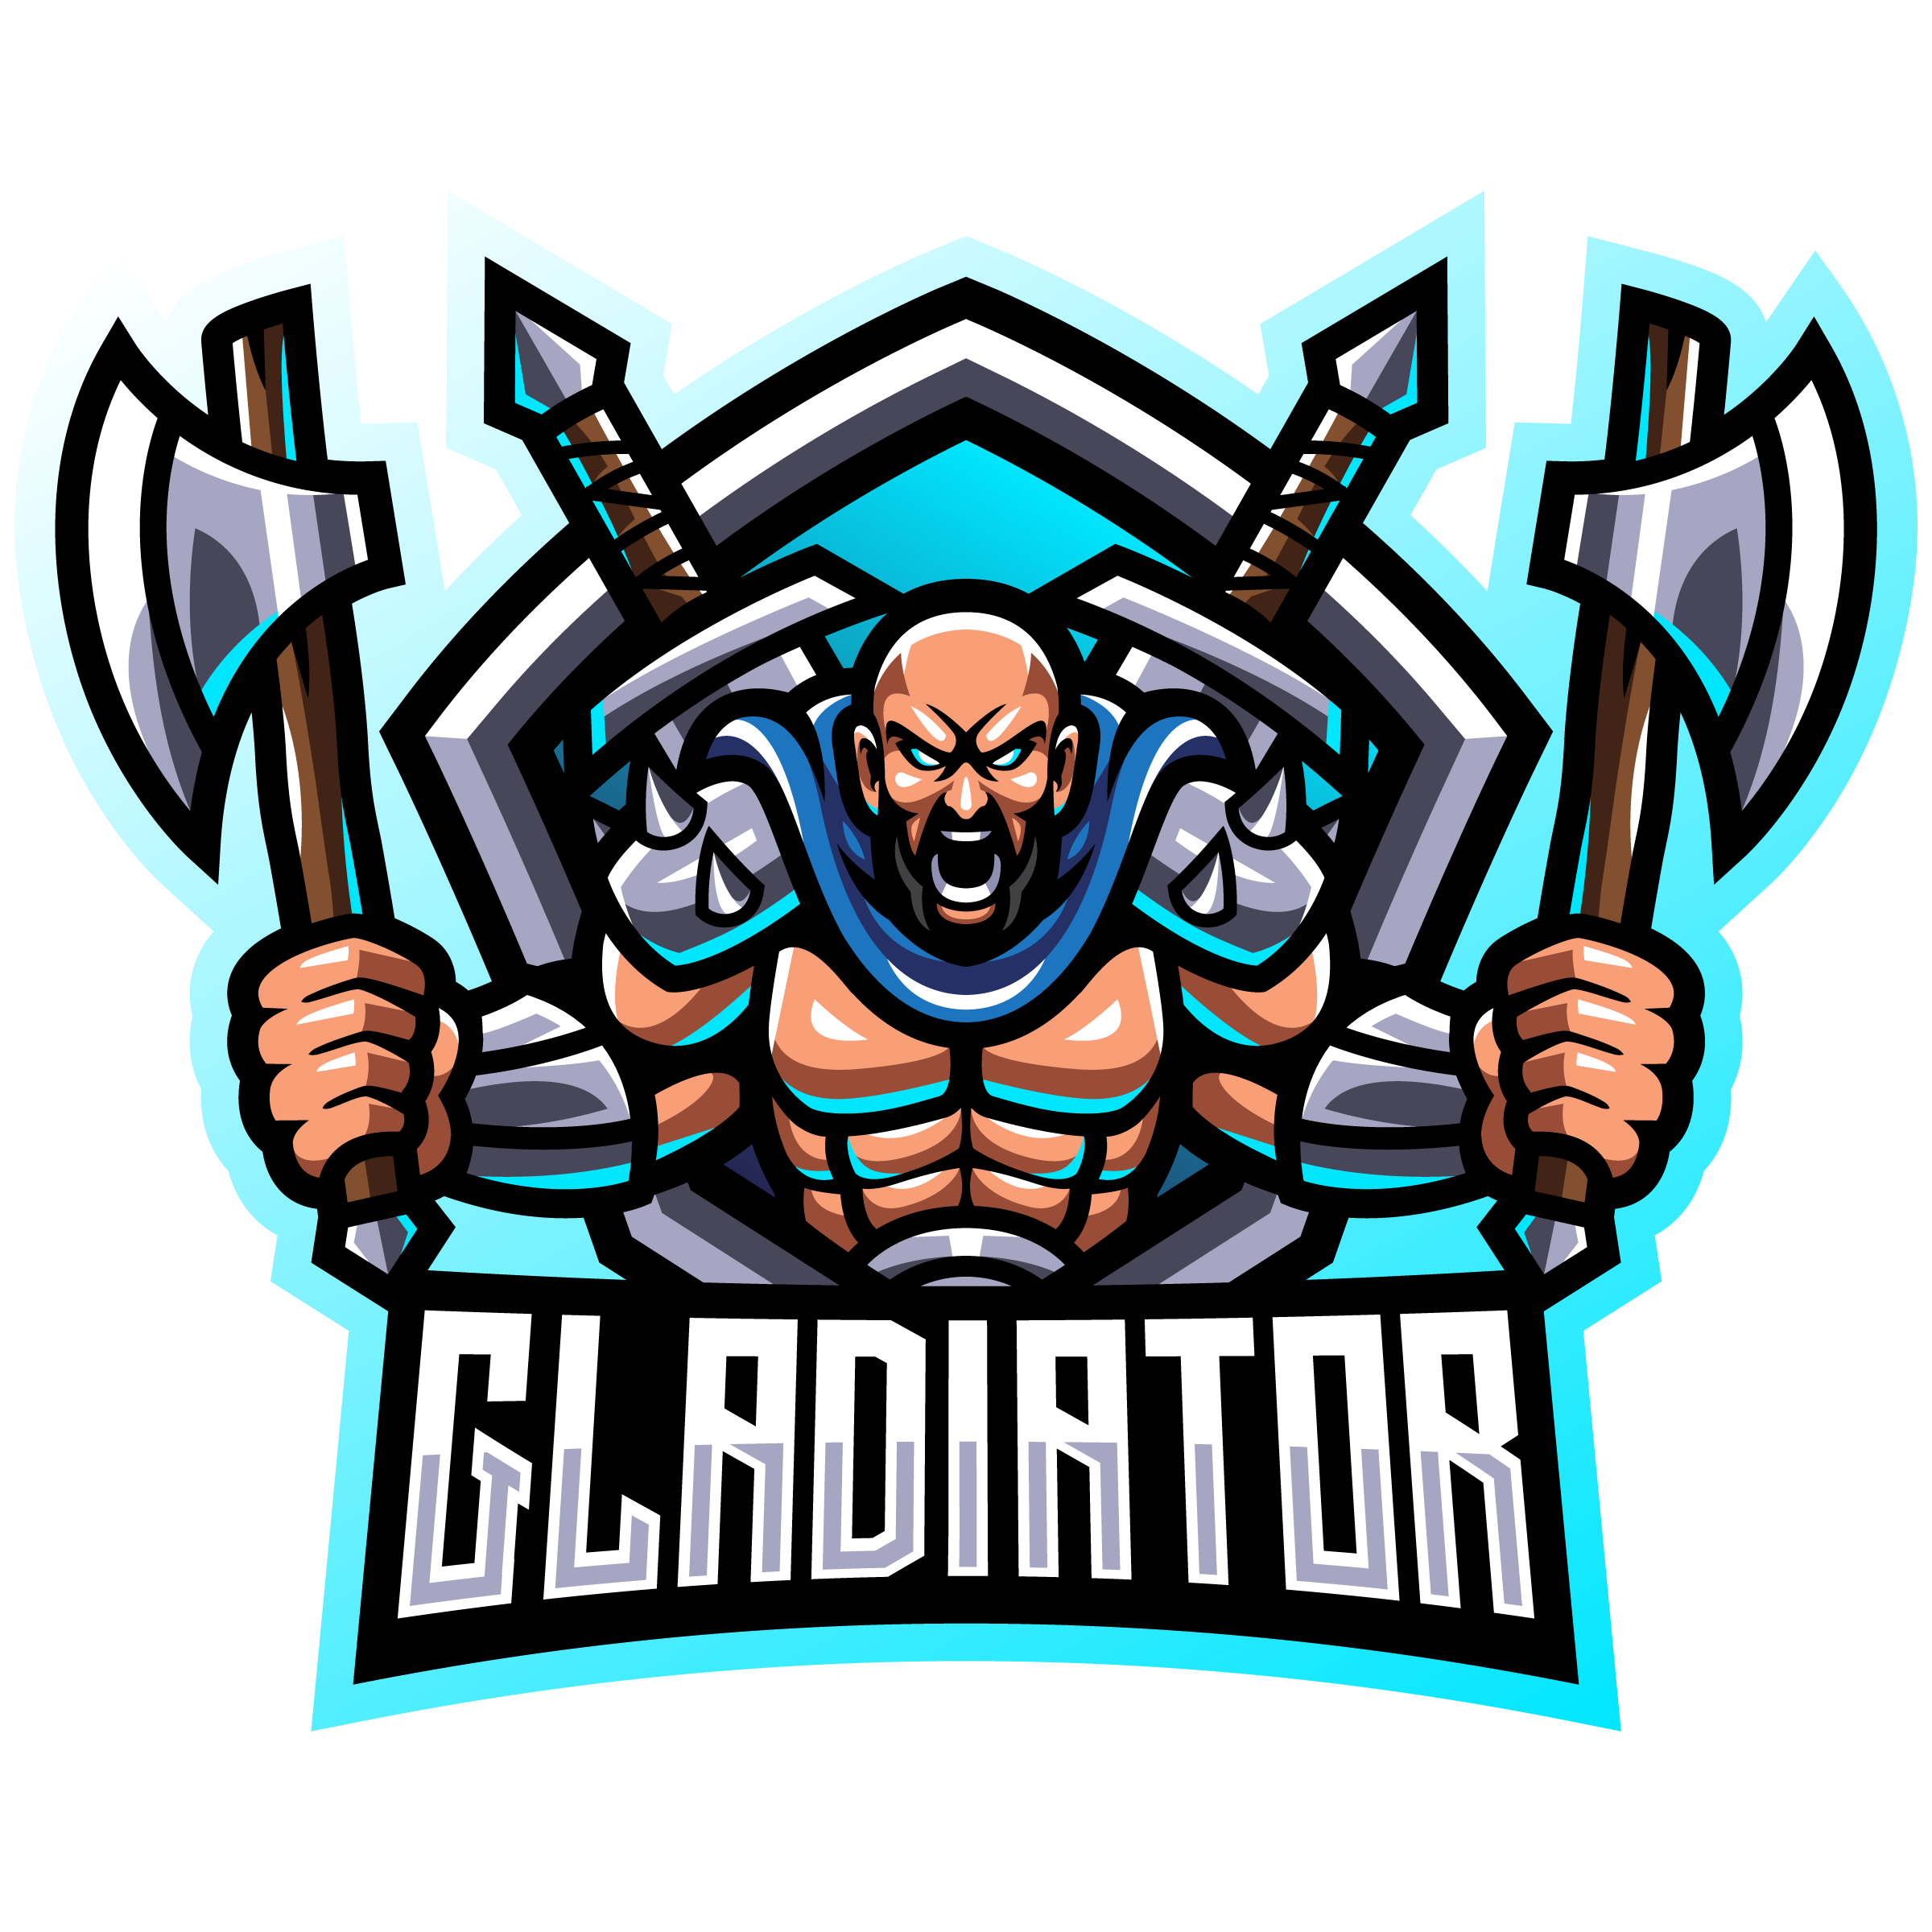 Free-Gladiator-Fighter-Esports-Mascot-Template-PNG-Transparent